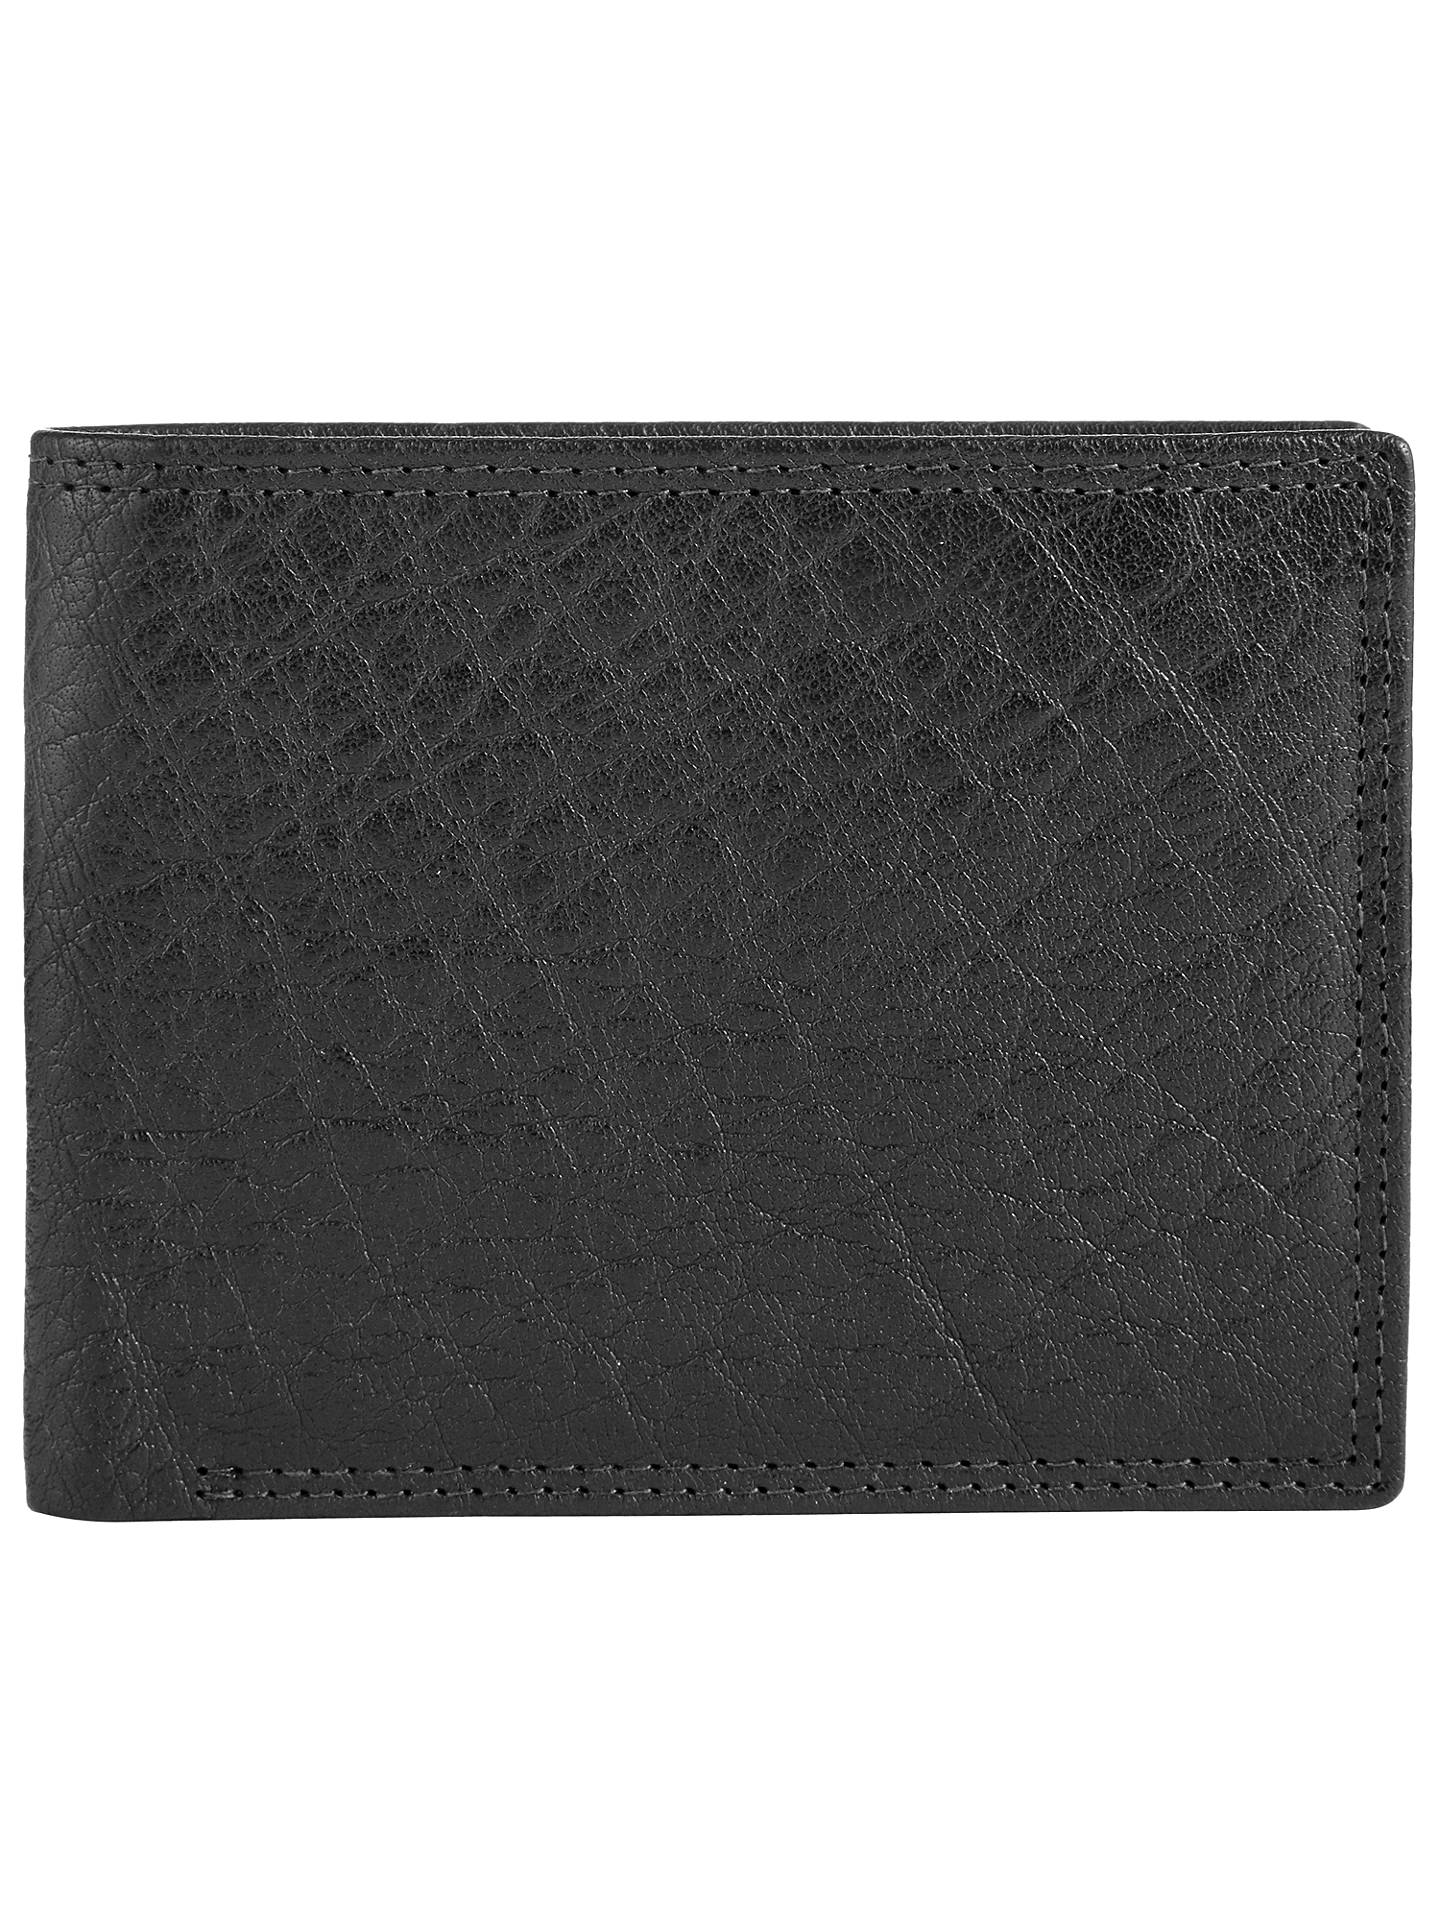 John Lewis Bifold Katta Aniline Leather RFID Blocking Wallet, Black